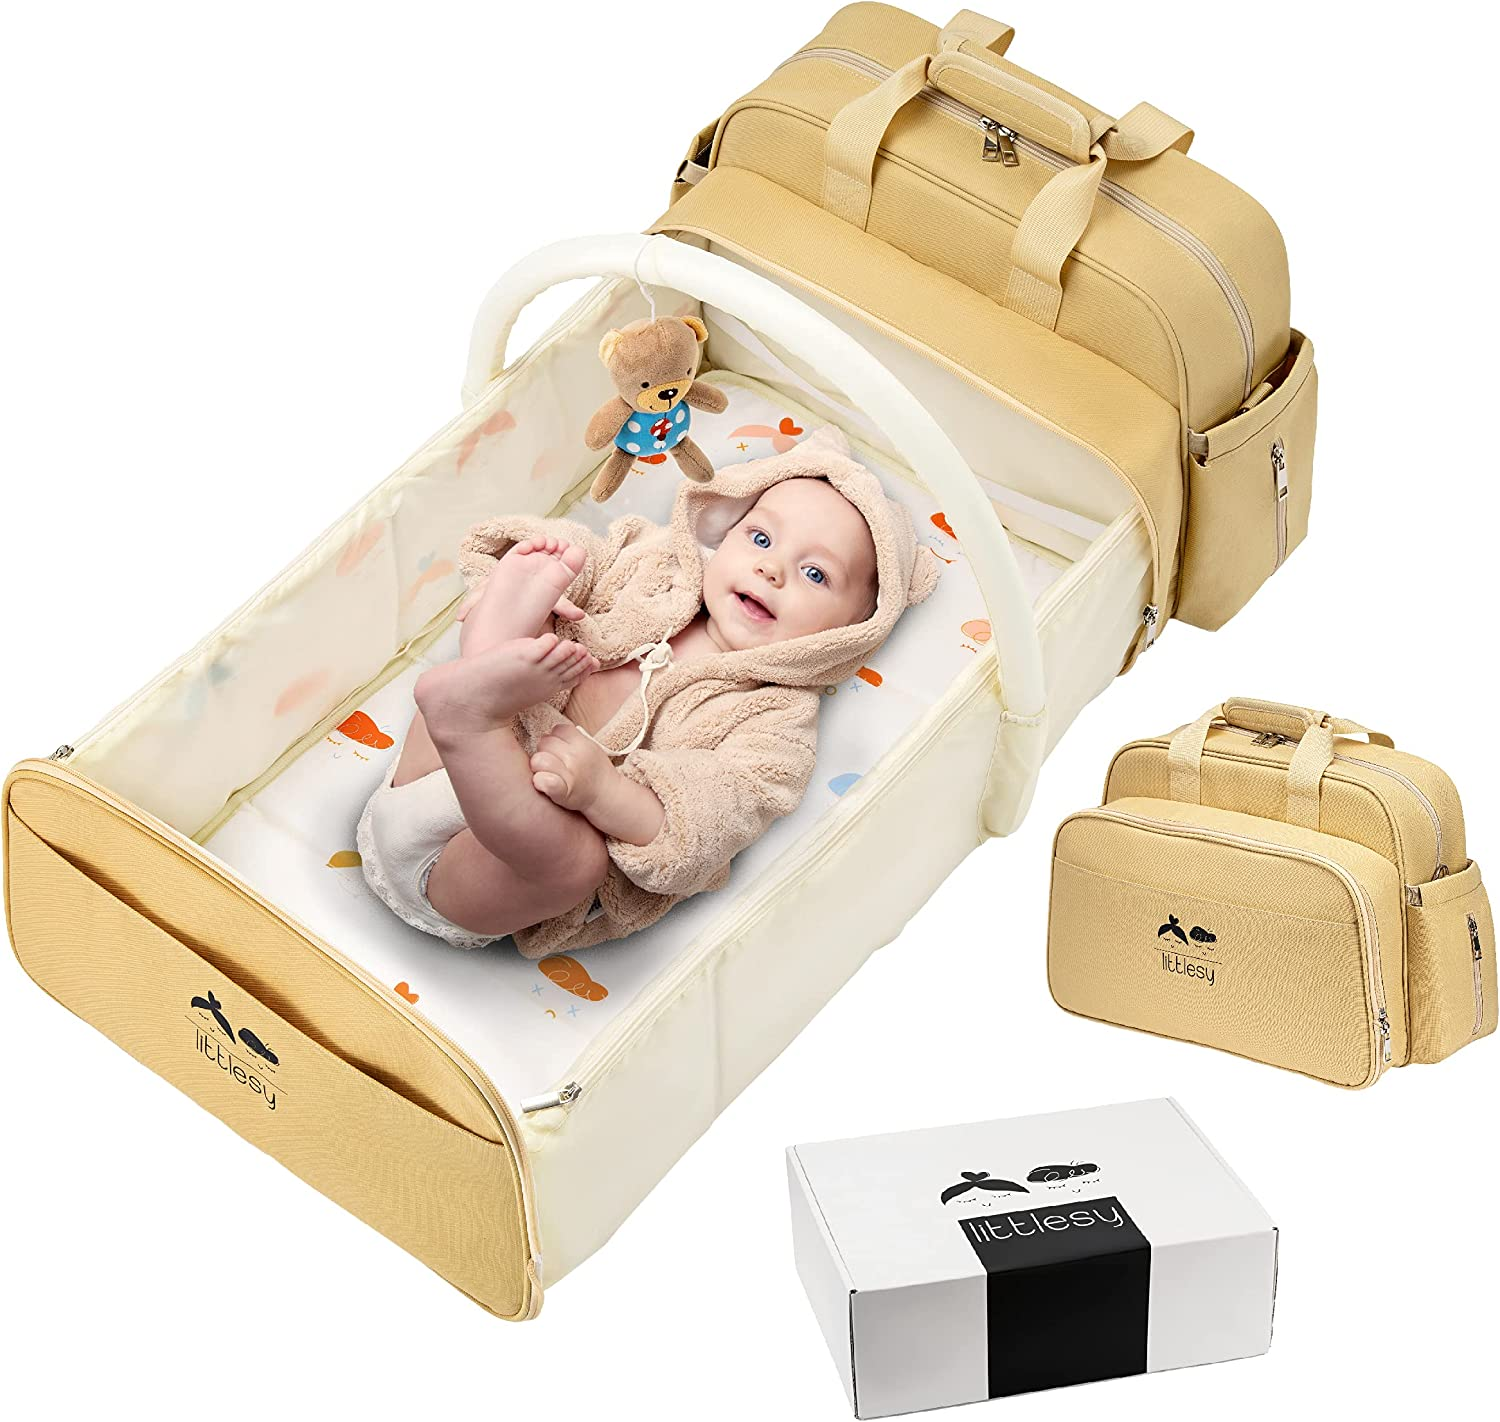 Littlesy Diaper Bag Backpack Changing Station – 6-in-1 Diaper Backpack Baby Bag with Folding Travel Bassinet Baby Changing Pad Waterproof Bag Portable Changing Pad Foldable Crib